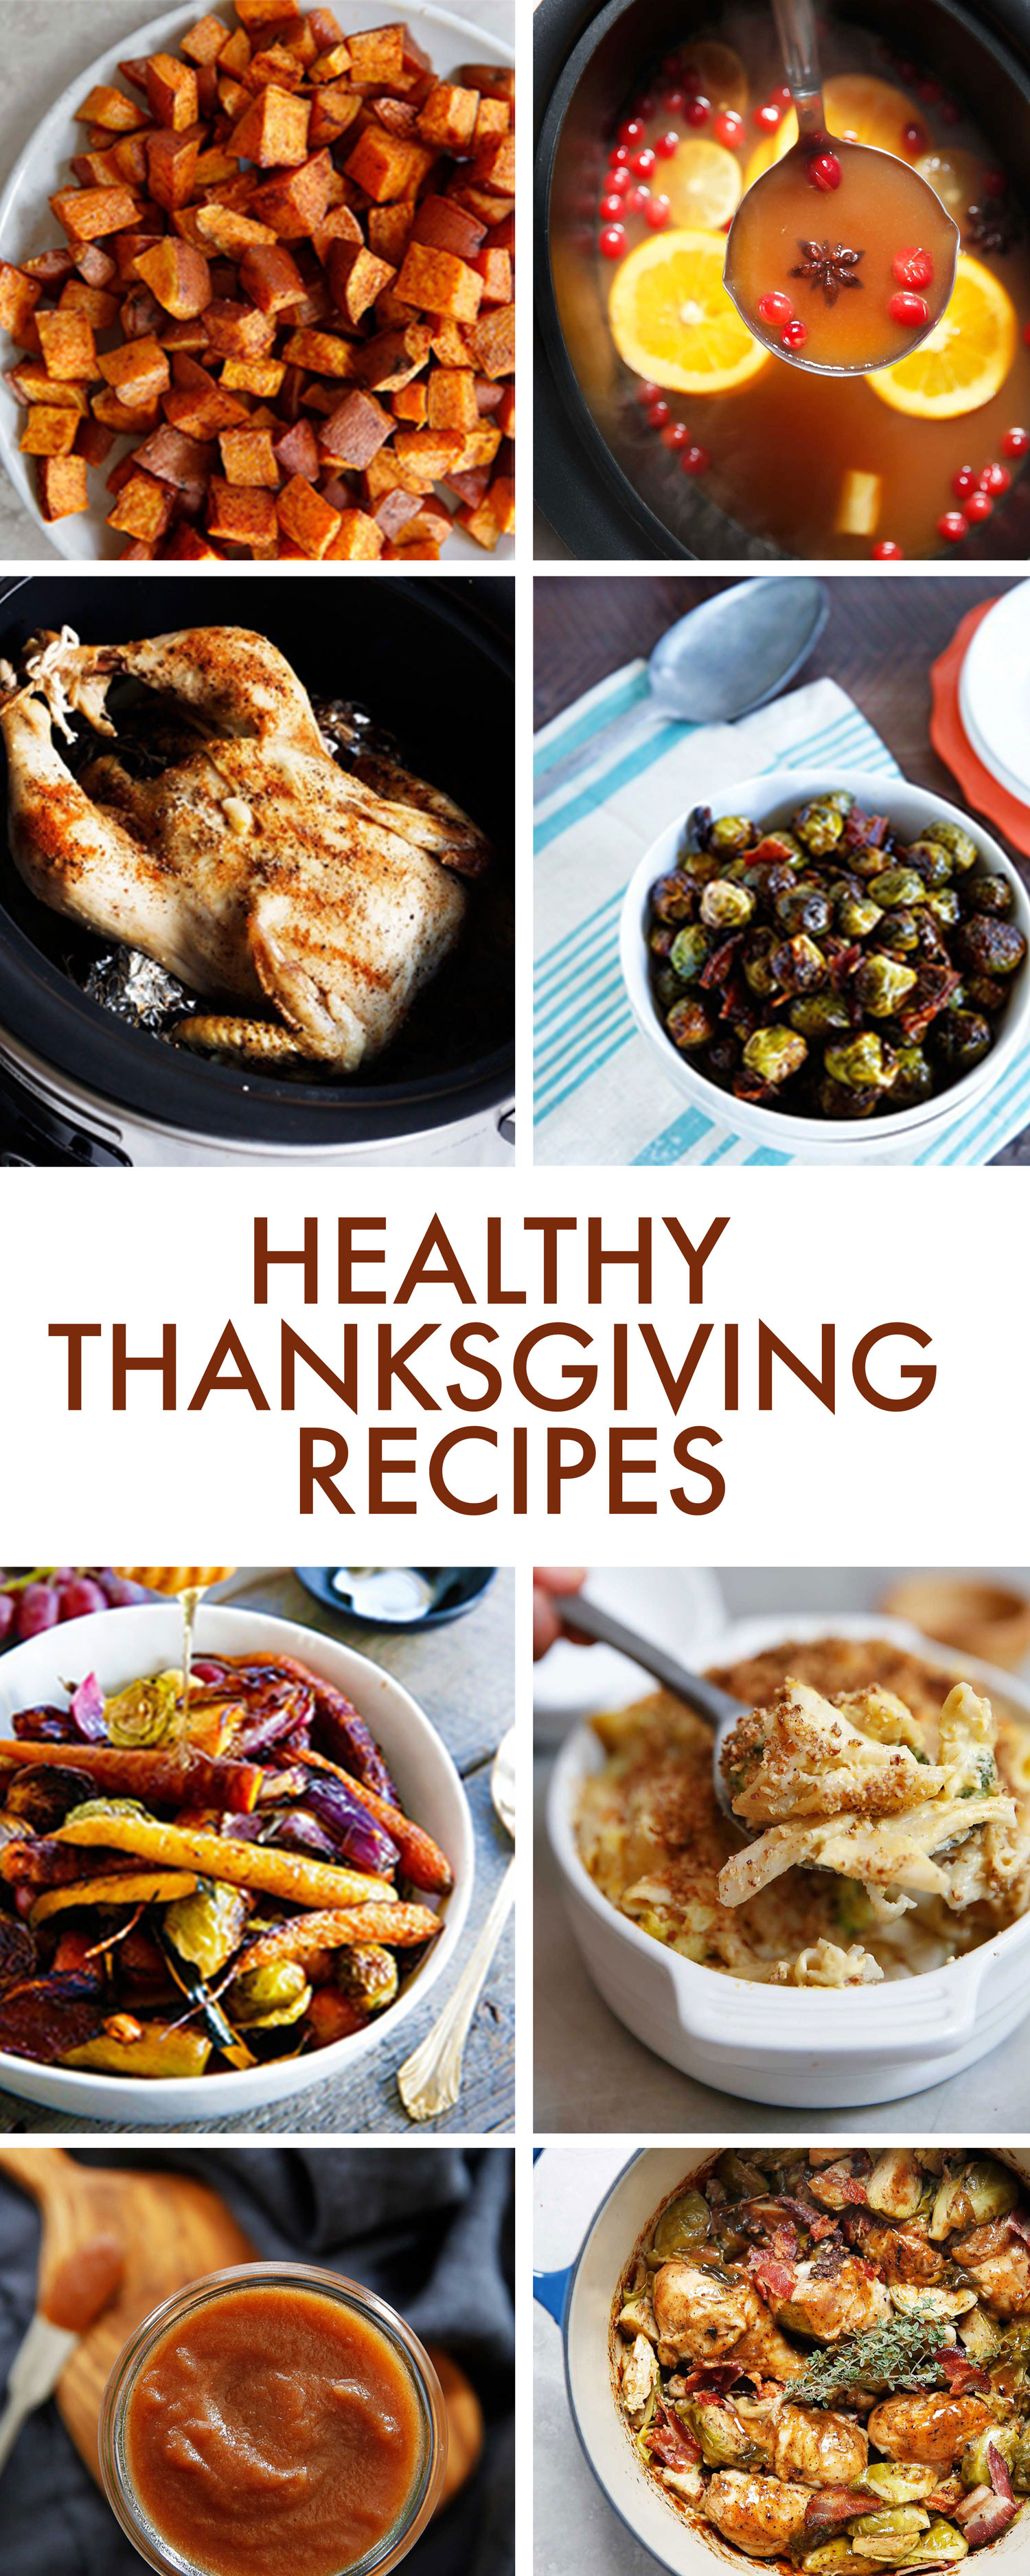 Healthy Thanksgiving Turkey Recipes  thanksgiving recipes Archives Lexi s Clean Kitchen